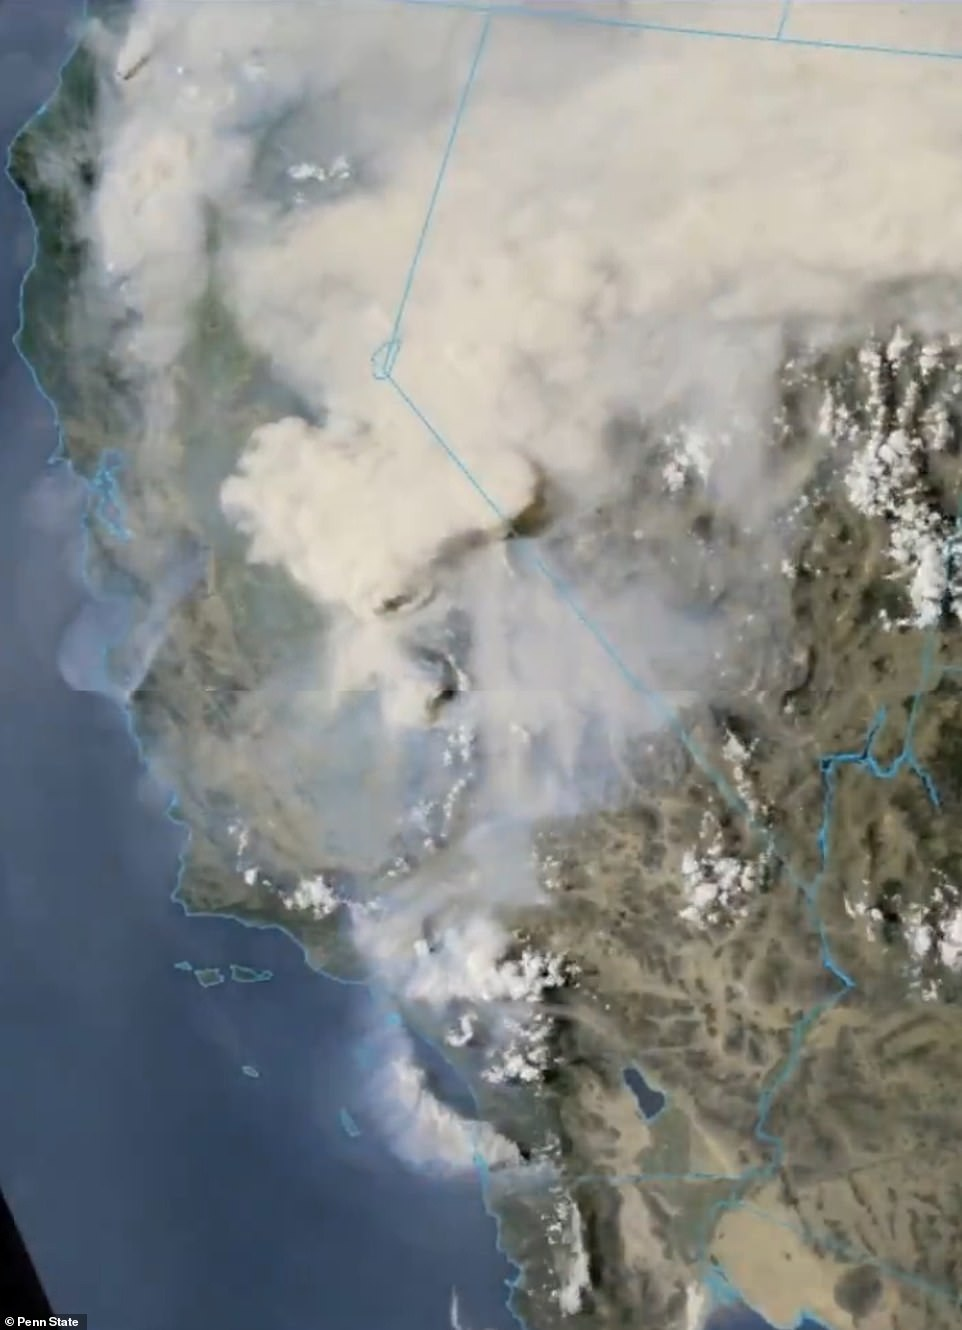 Satellite images on Saturday gave the impression of an El Dorado fire, which launched a gender exposure party